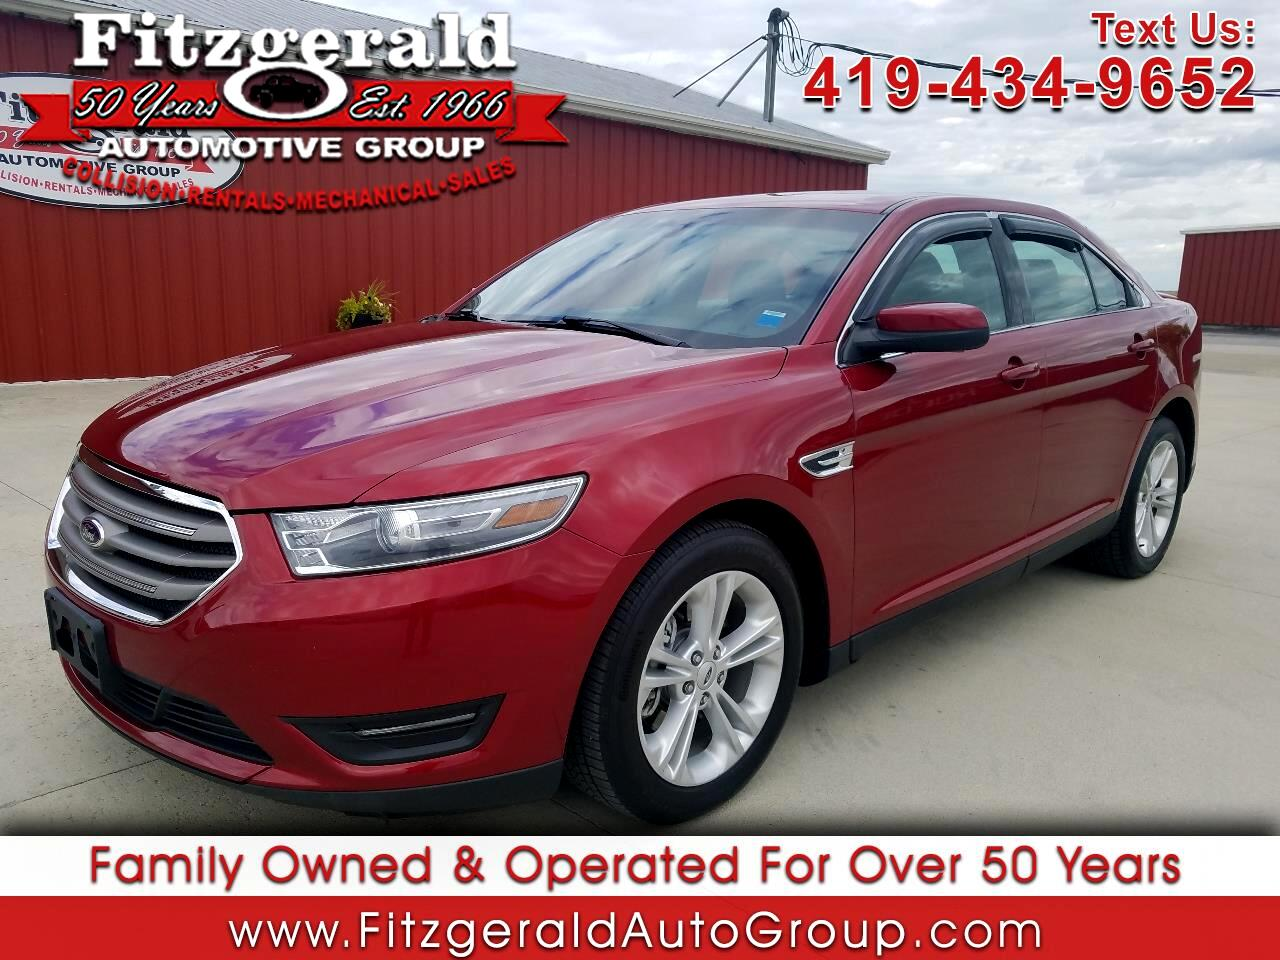 Ford Taurus 4dr Sdn SEL FWD 2014